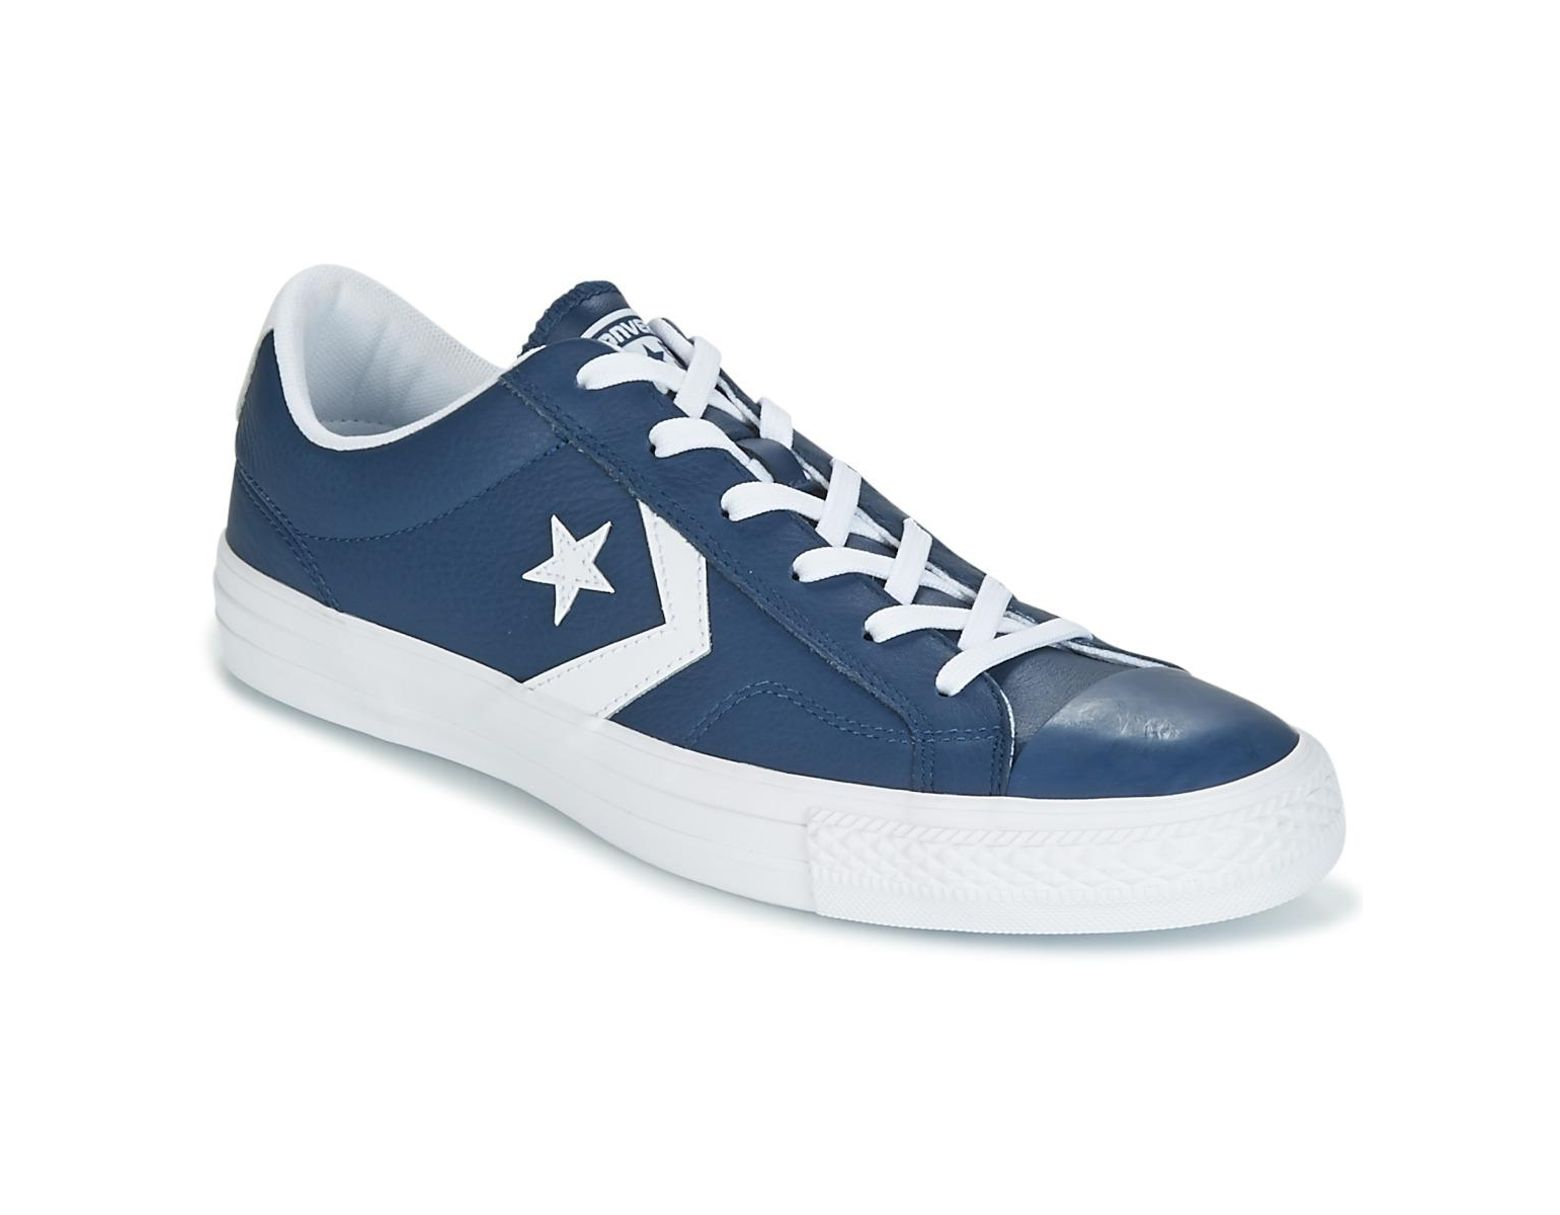 Star Leather Men's Essentials Blue Shoestrainers Ox Player txCrdsQh